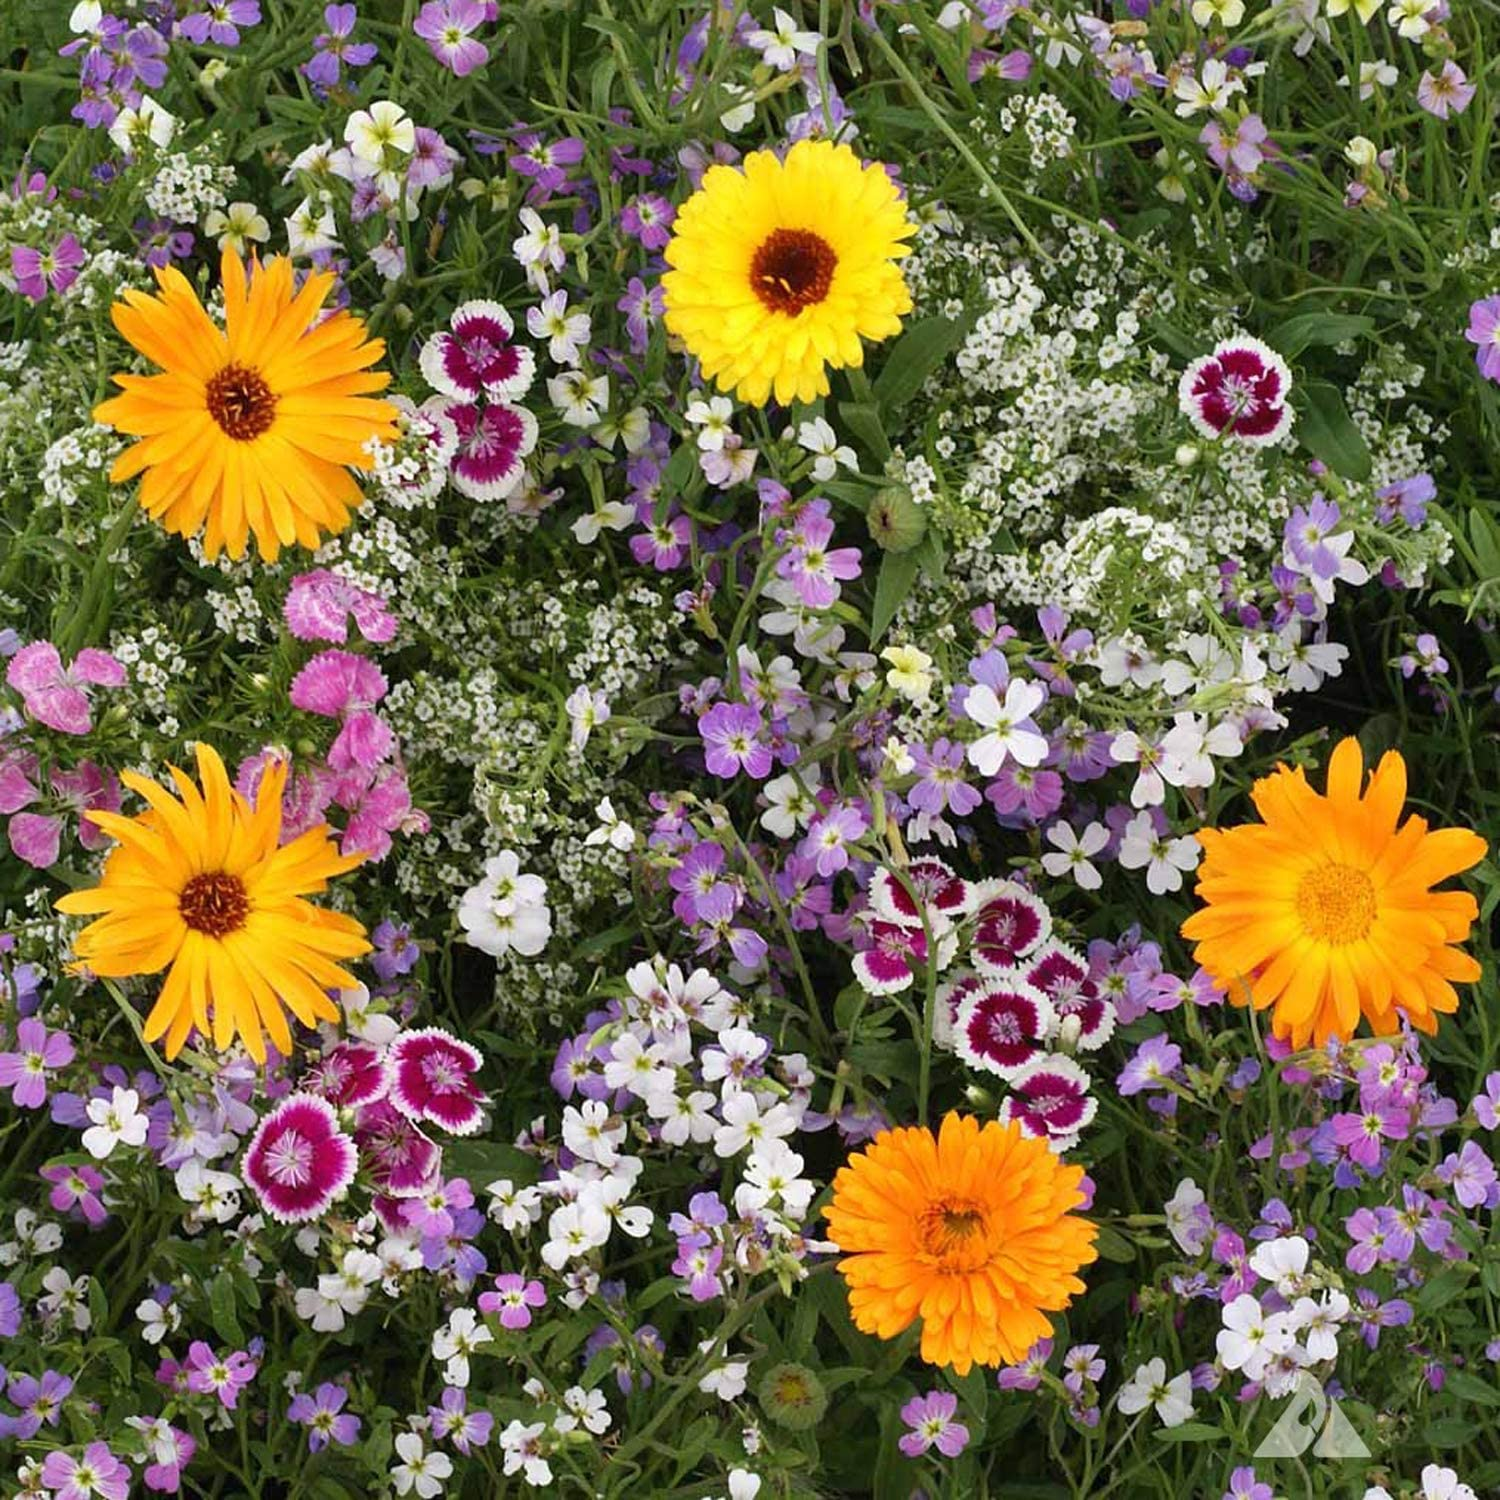 UtopiaSeeds Fragrant Flower Seed Mix - Grow a Beautifully Fragrant Garden - Annuals and Perennials